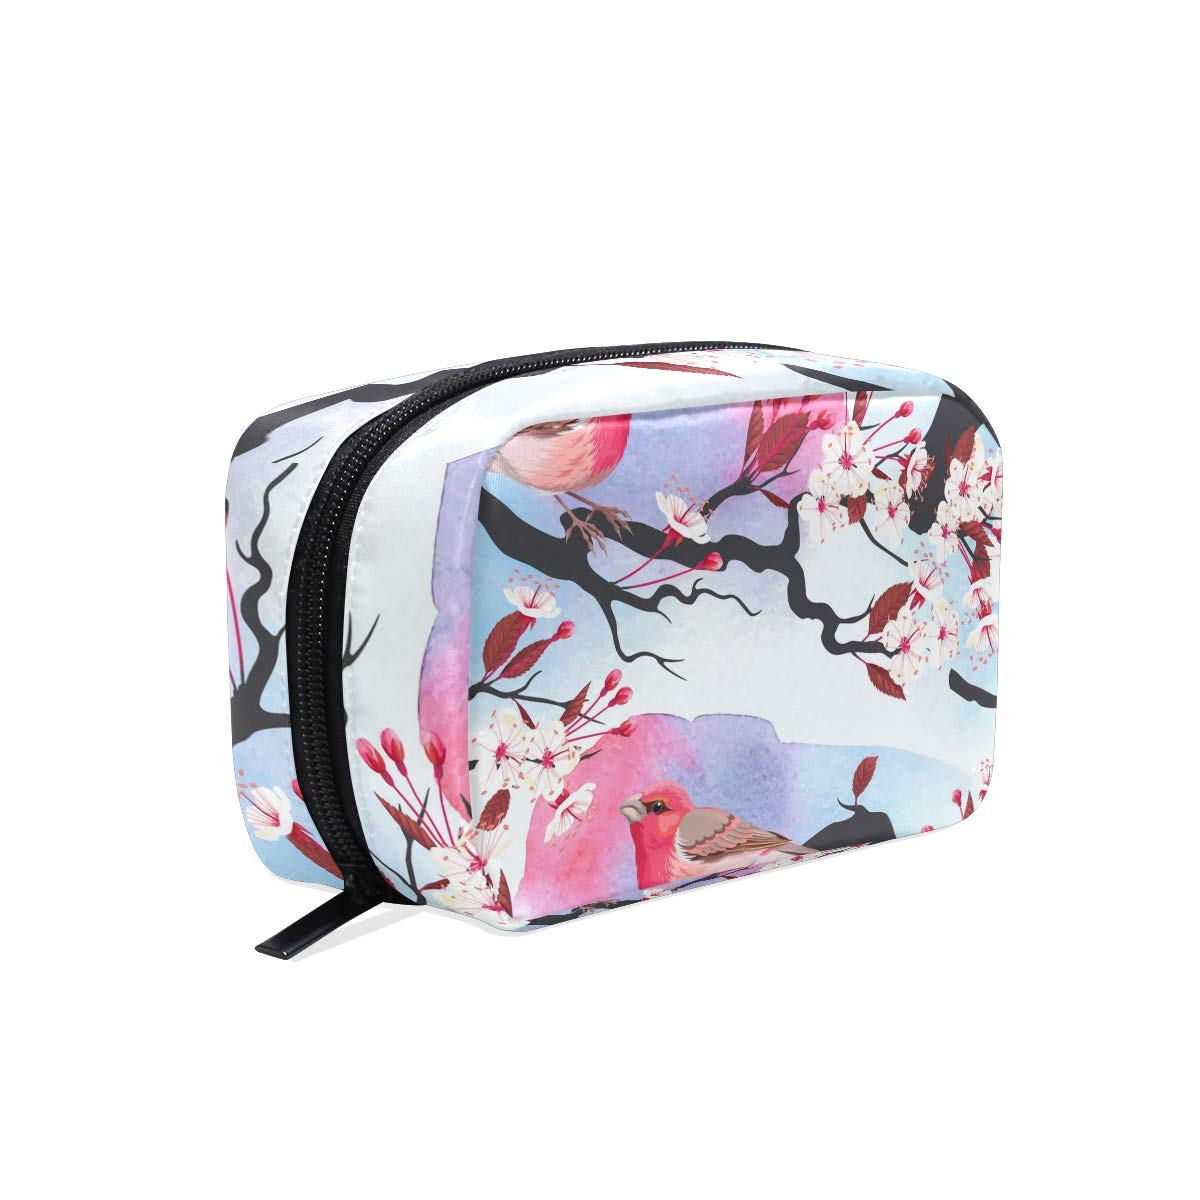 Makeup Bag Portable Travel Cosmetic Train Case Peach Blossom Bird Toiletry Bag Organizer Accessories Case Tools Case for Beauty Women